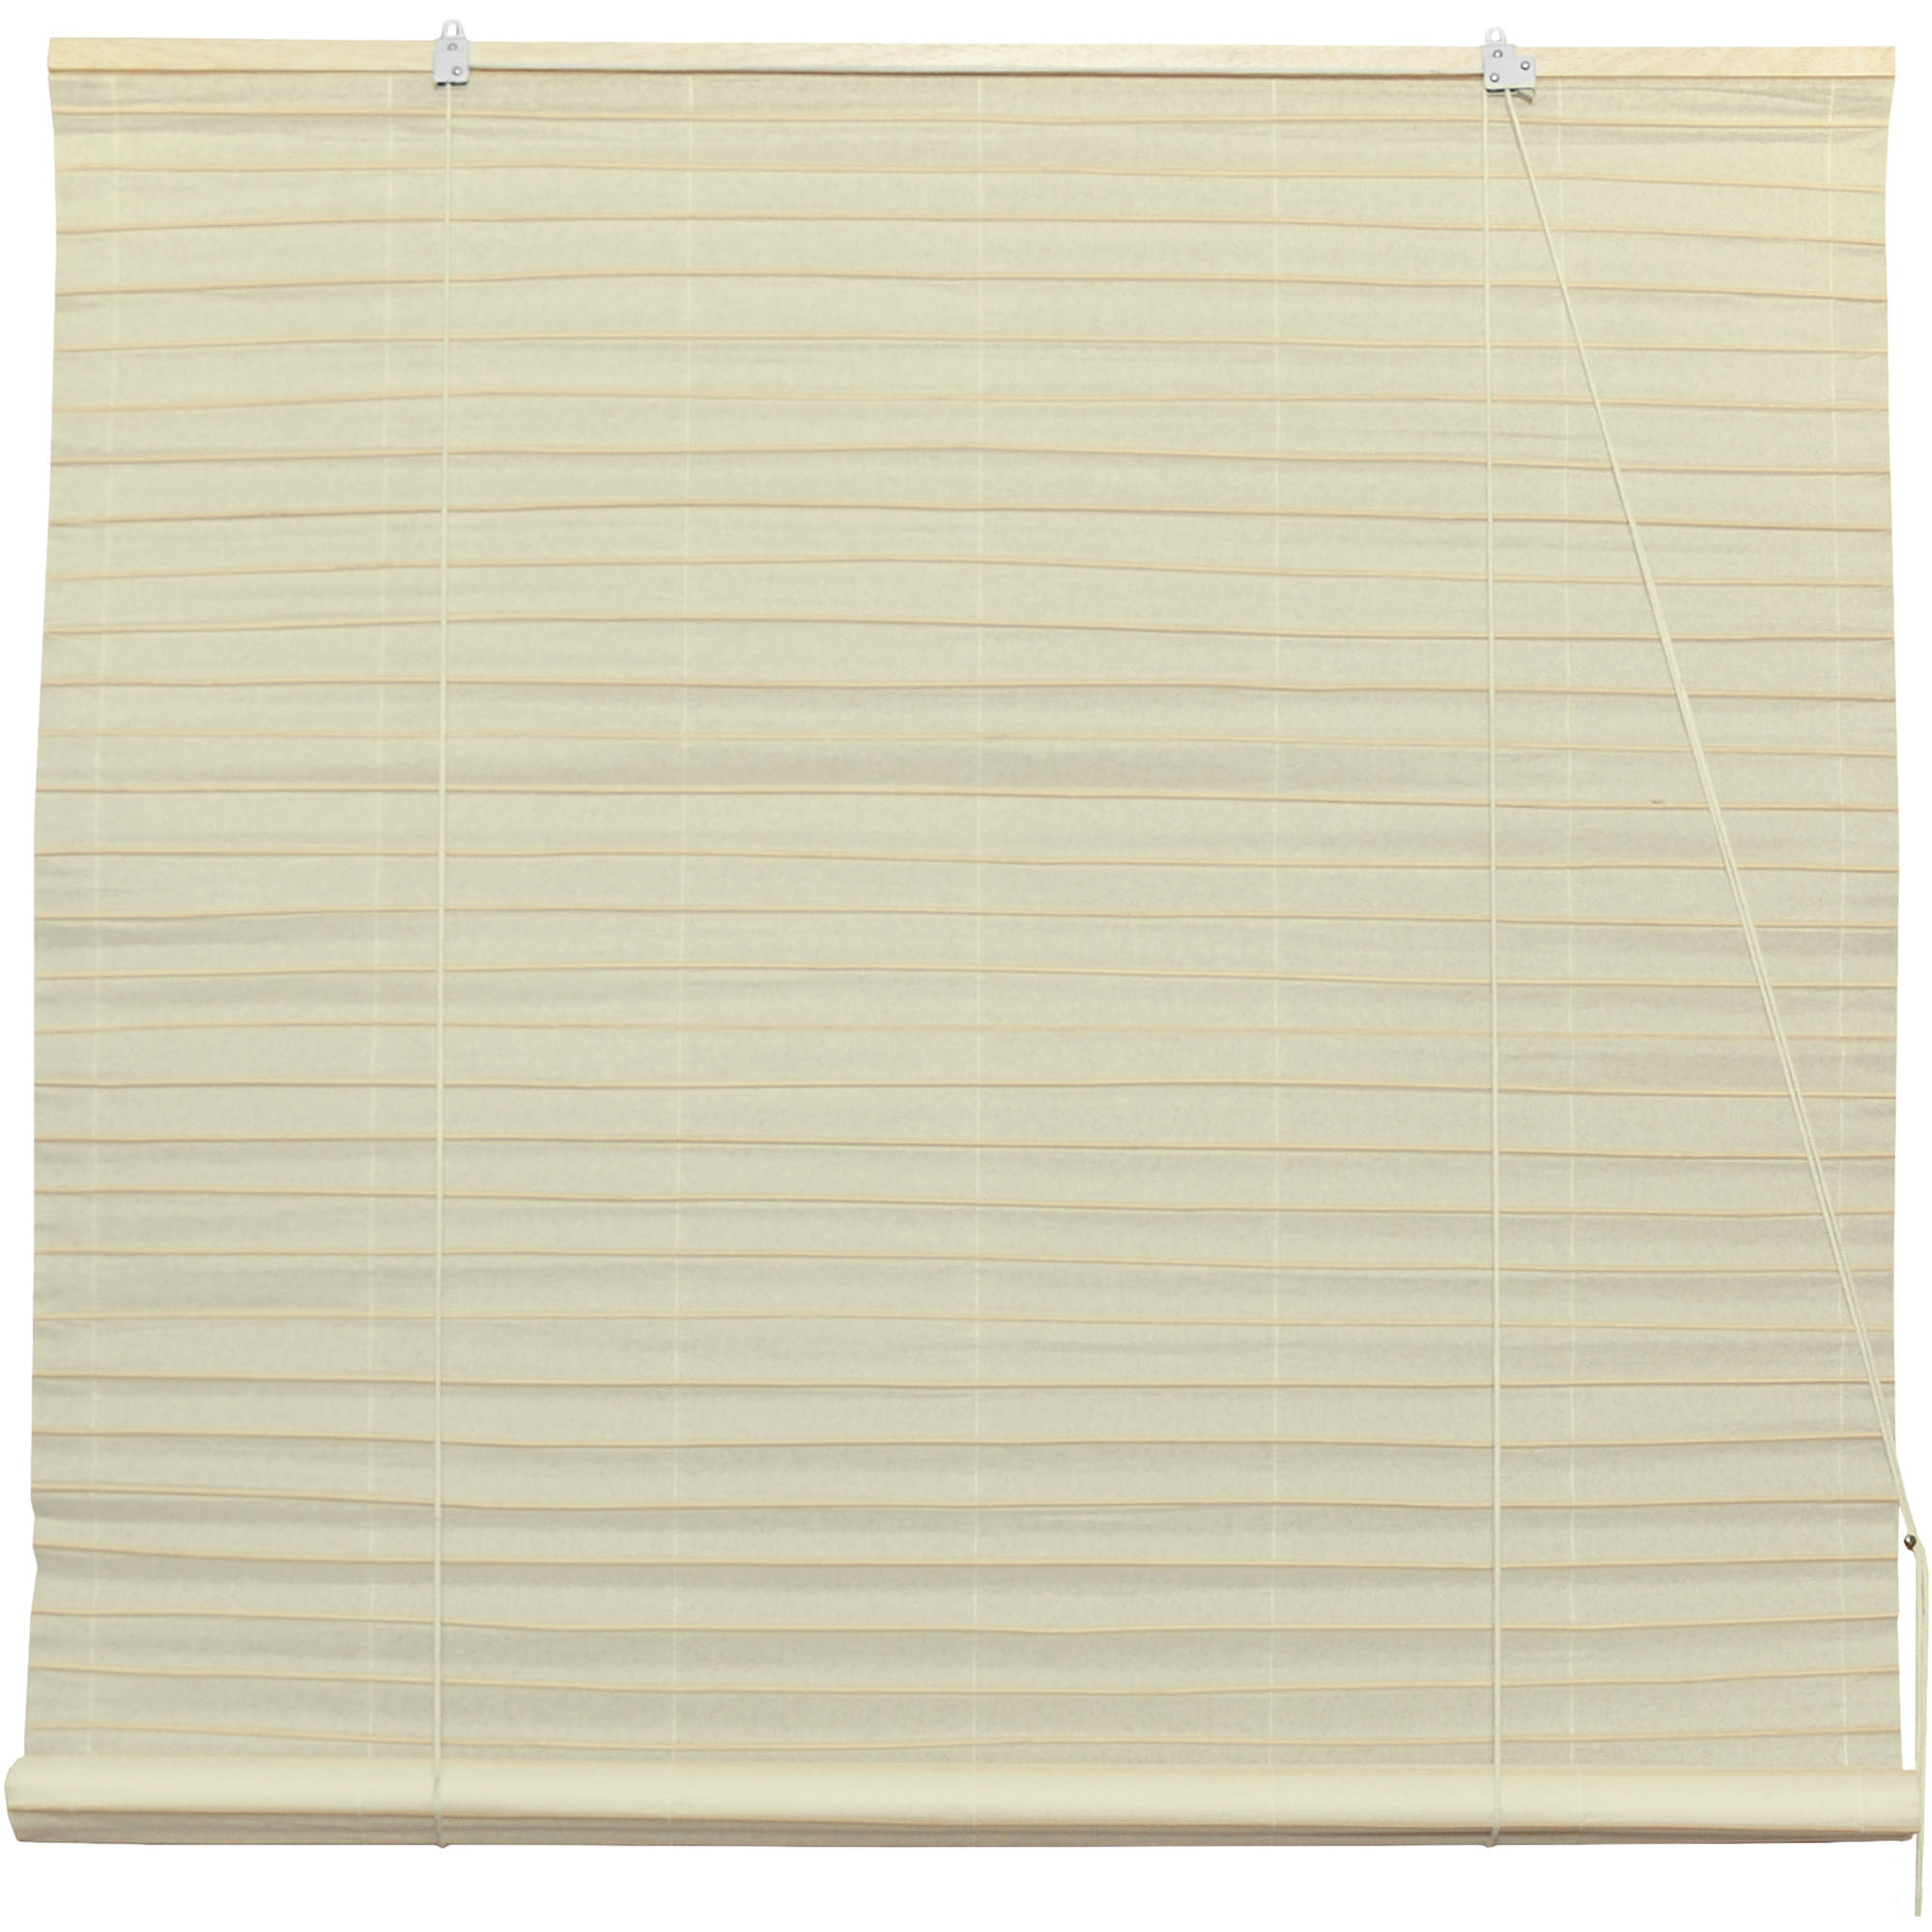 Shoji Paper Roll Up Blinds, Cream